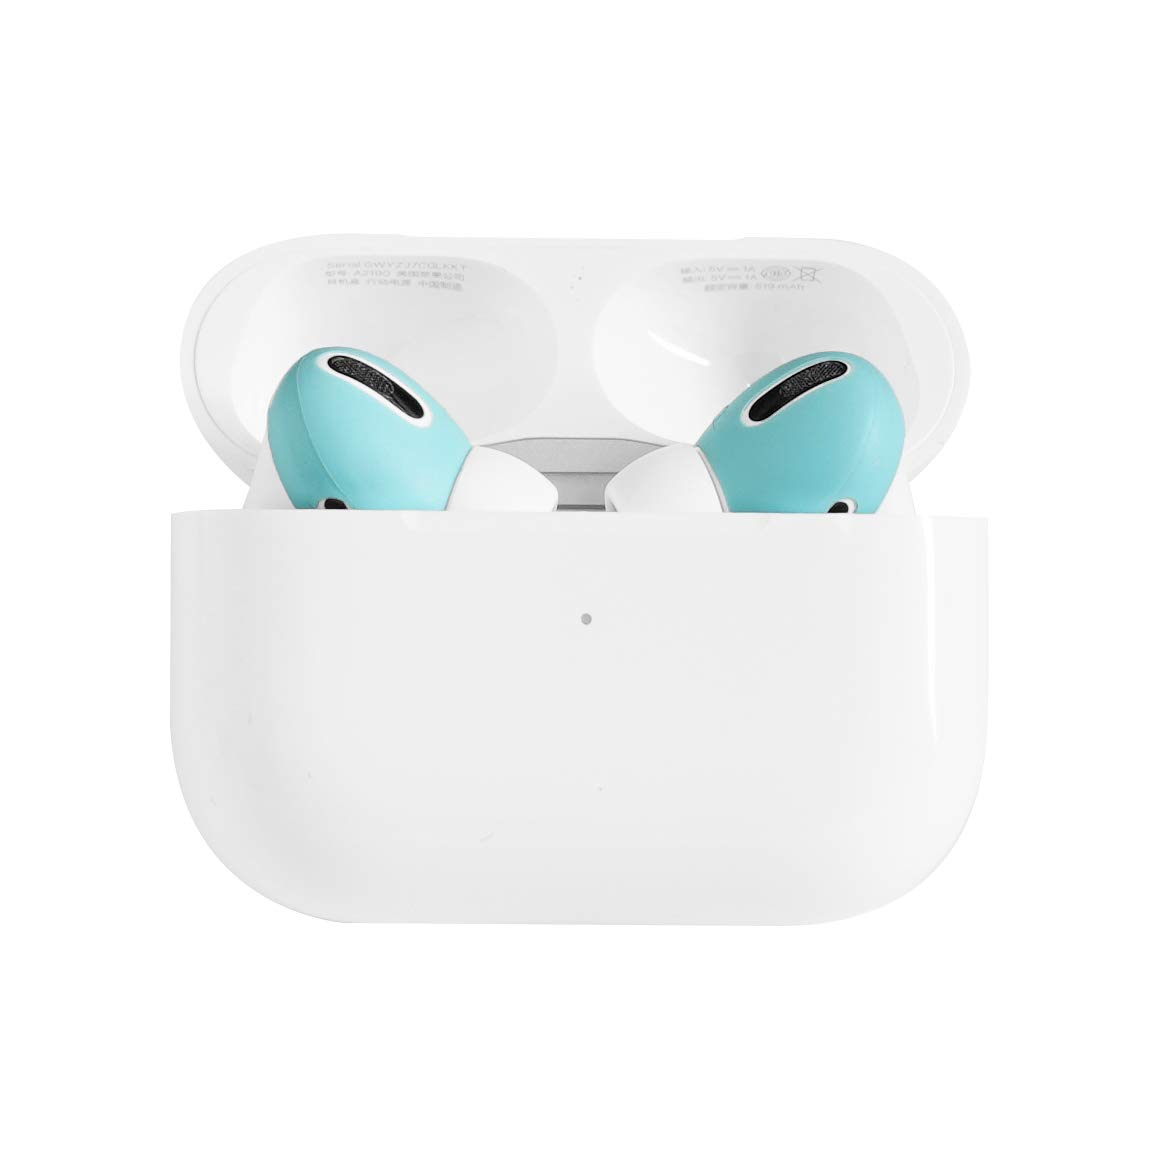 DamonLight AirPods Pro Cover [Fit in The case] [Comfortable Listening] Compatible with AirPods Pro Anti-Slip Silicone eartips Soft Sport Covers AirPods Pro Accessories2 Pairs (Ice Blue)